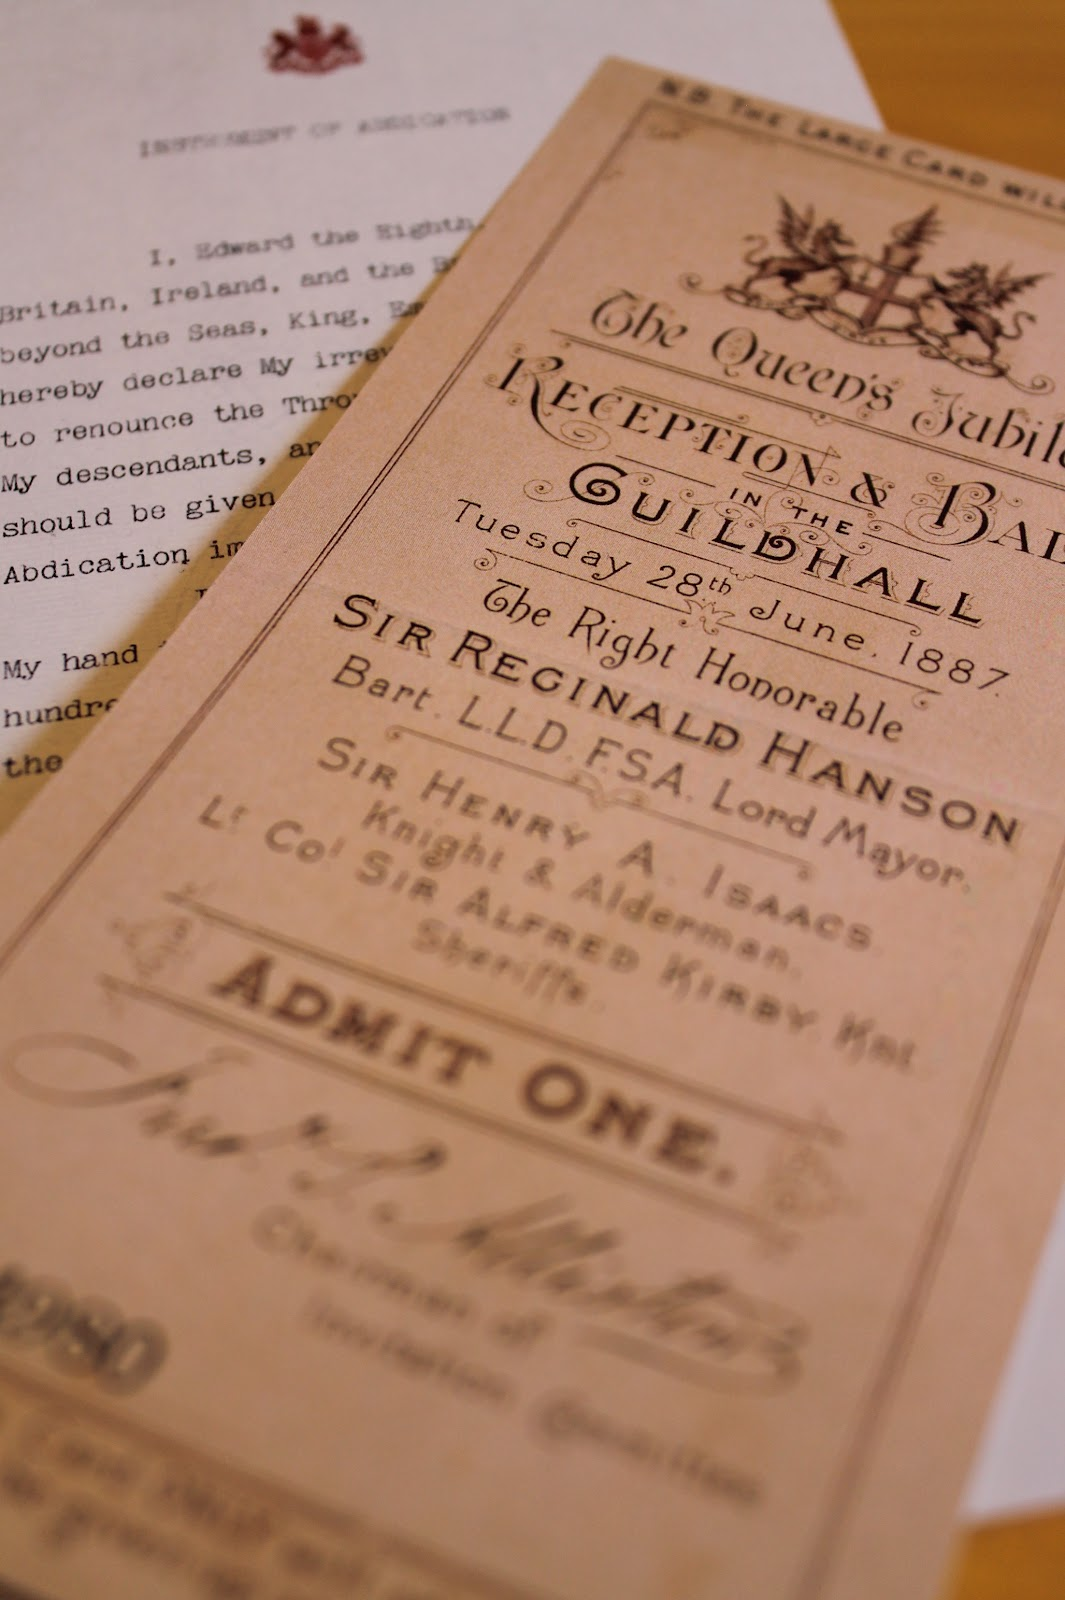 Marilyns royal blog april 2012 reproductions of memorabilia include the execution warrant for mary queen of scots william and catherines wedding invitation the instrument of stopboris Choice Image